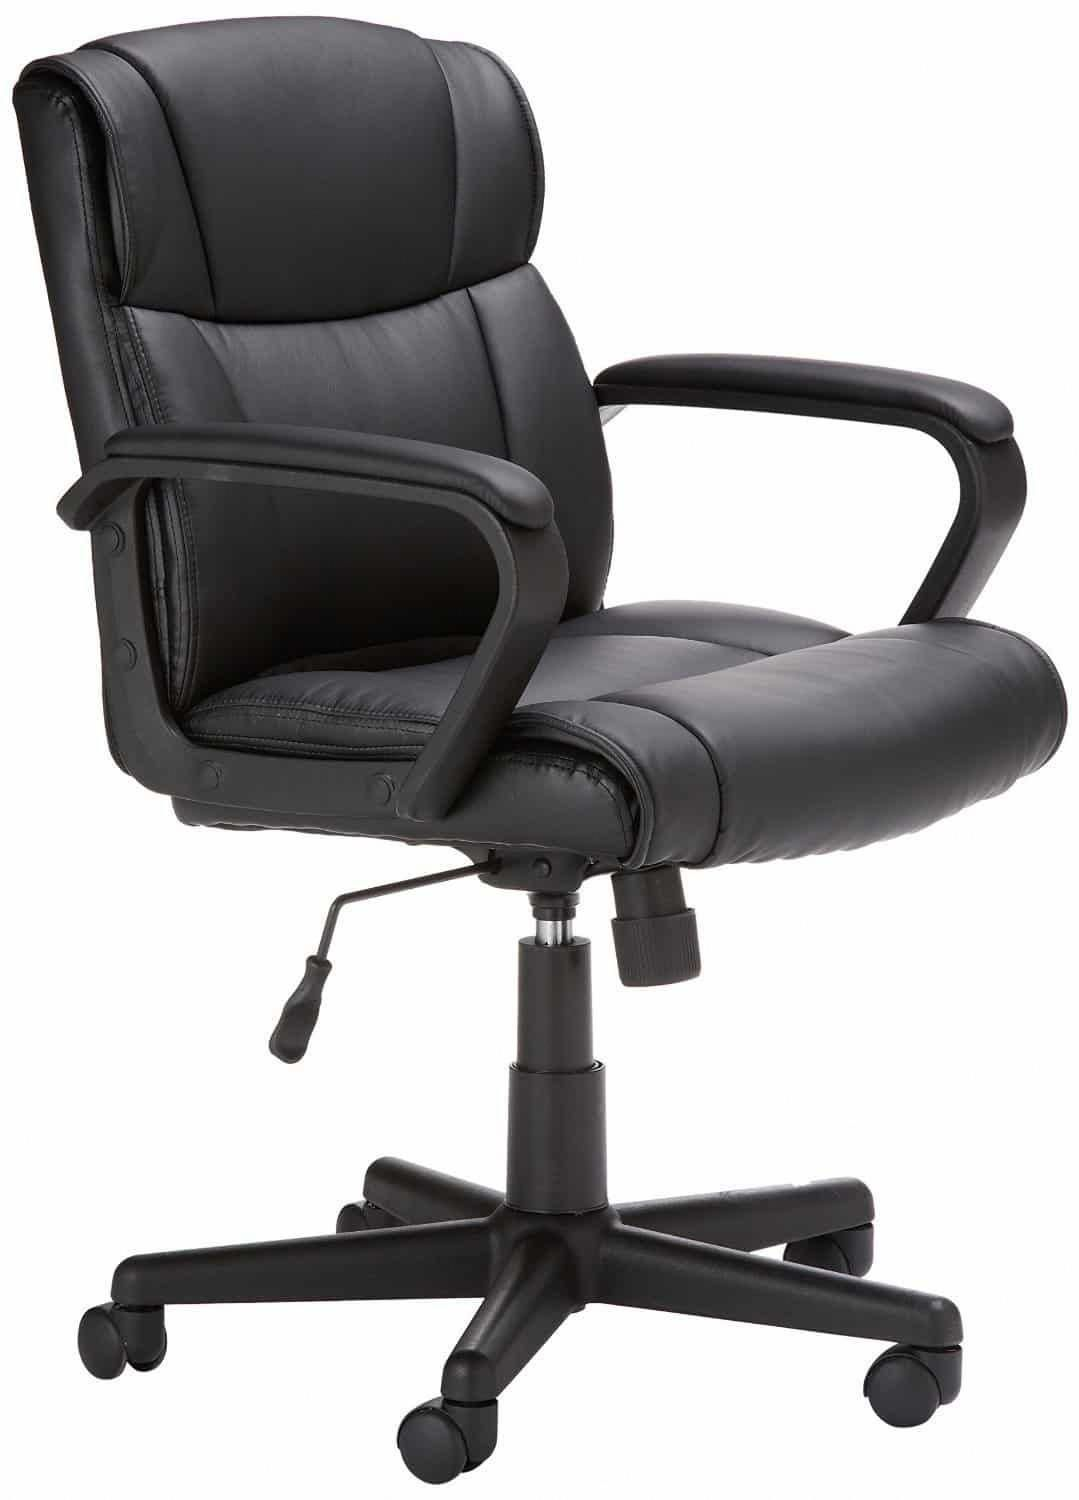 Most Ergonomic Office Chair Top 10 Most Comfortable Office Chairs In 2018